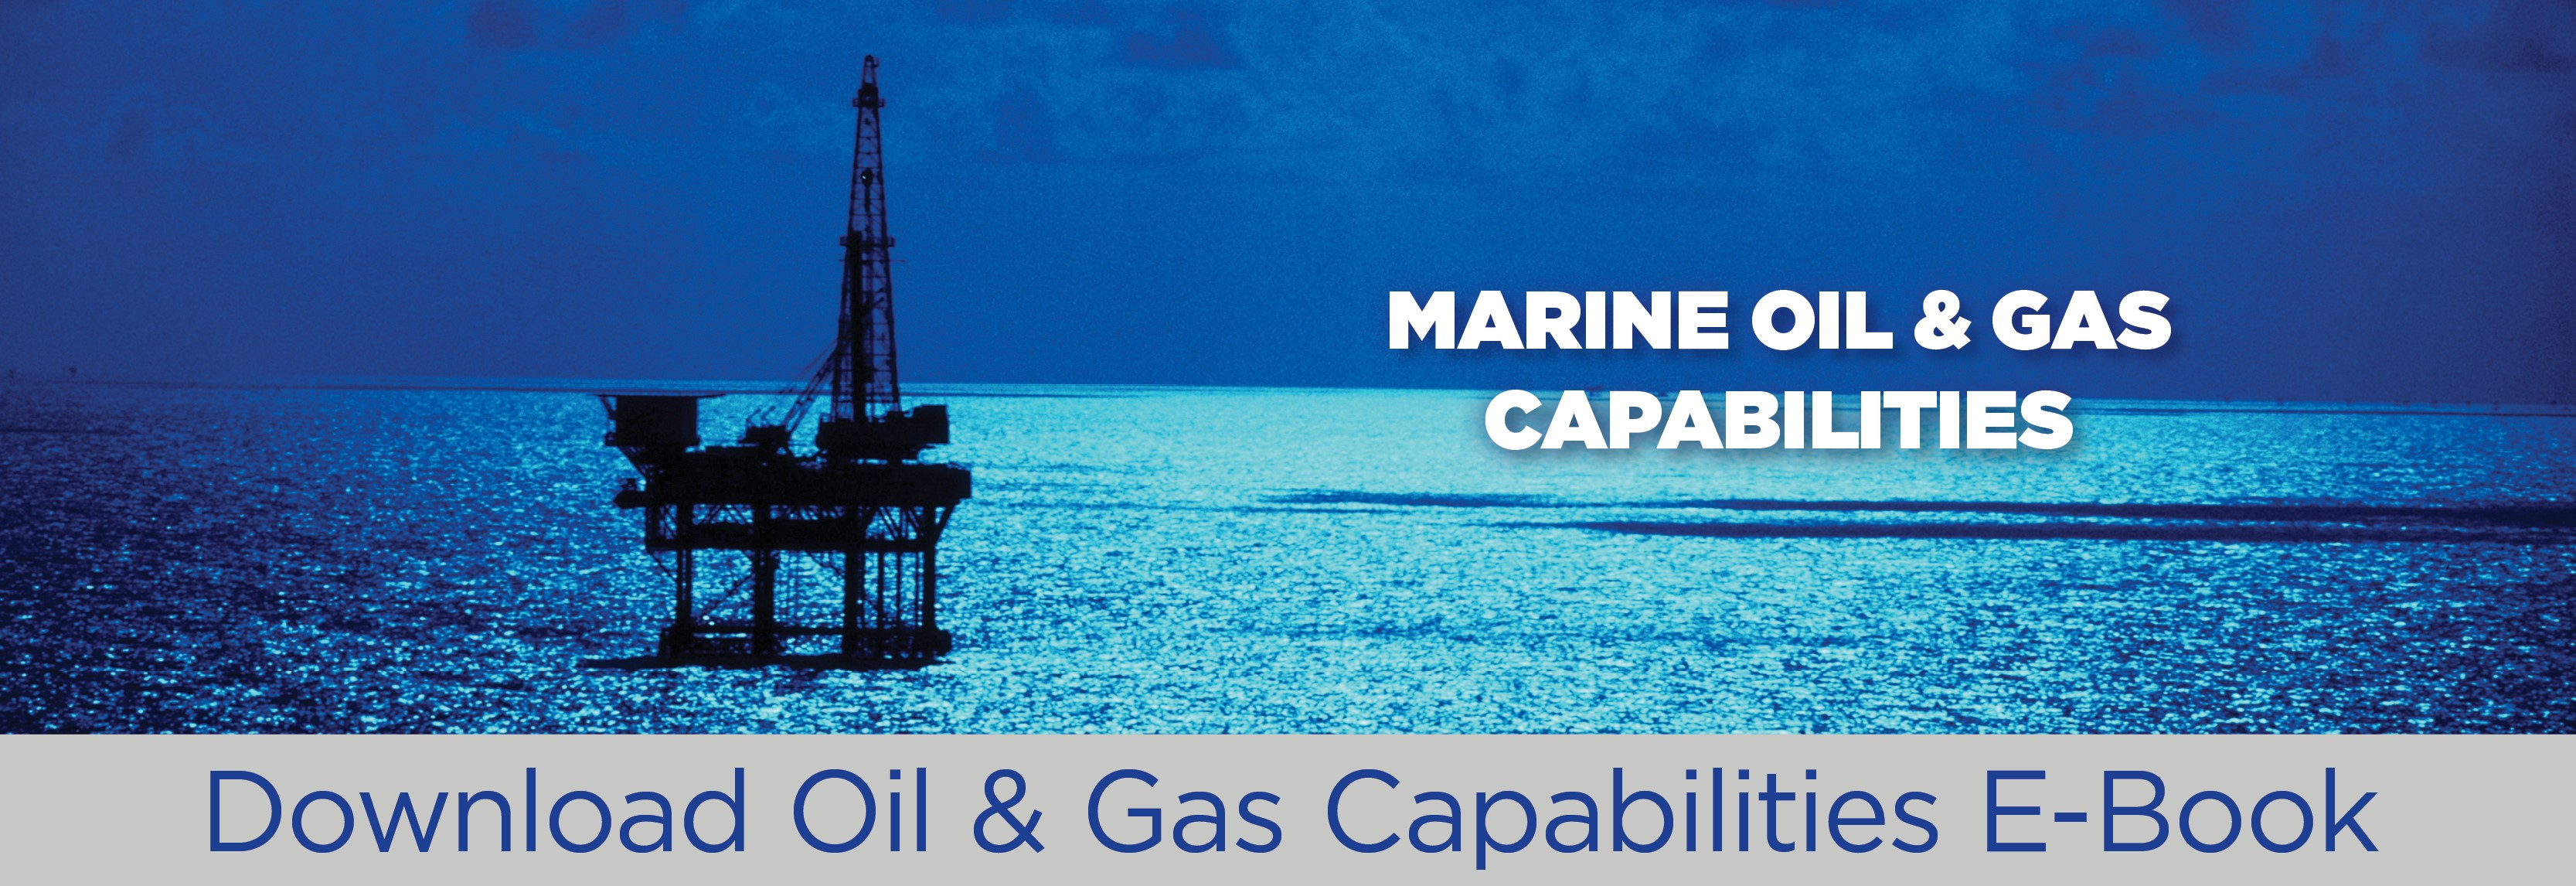 Lander Banner_Oil  & Gas Capabilities_e-Book.jpg